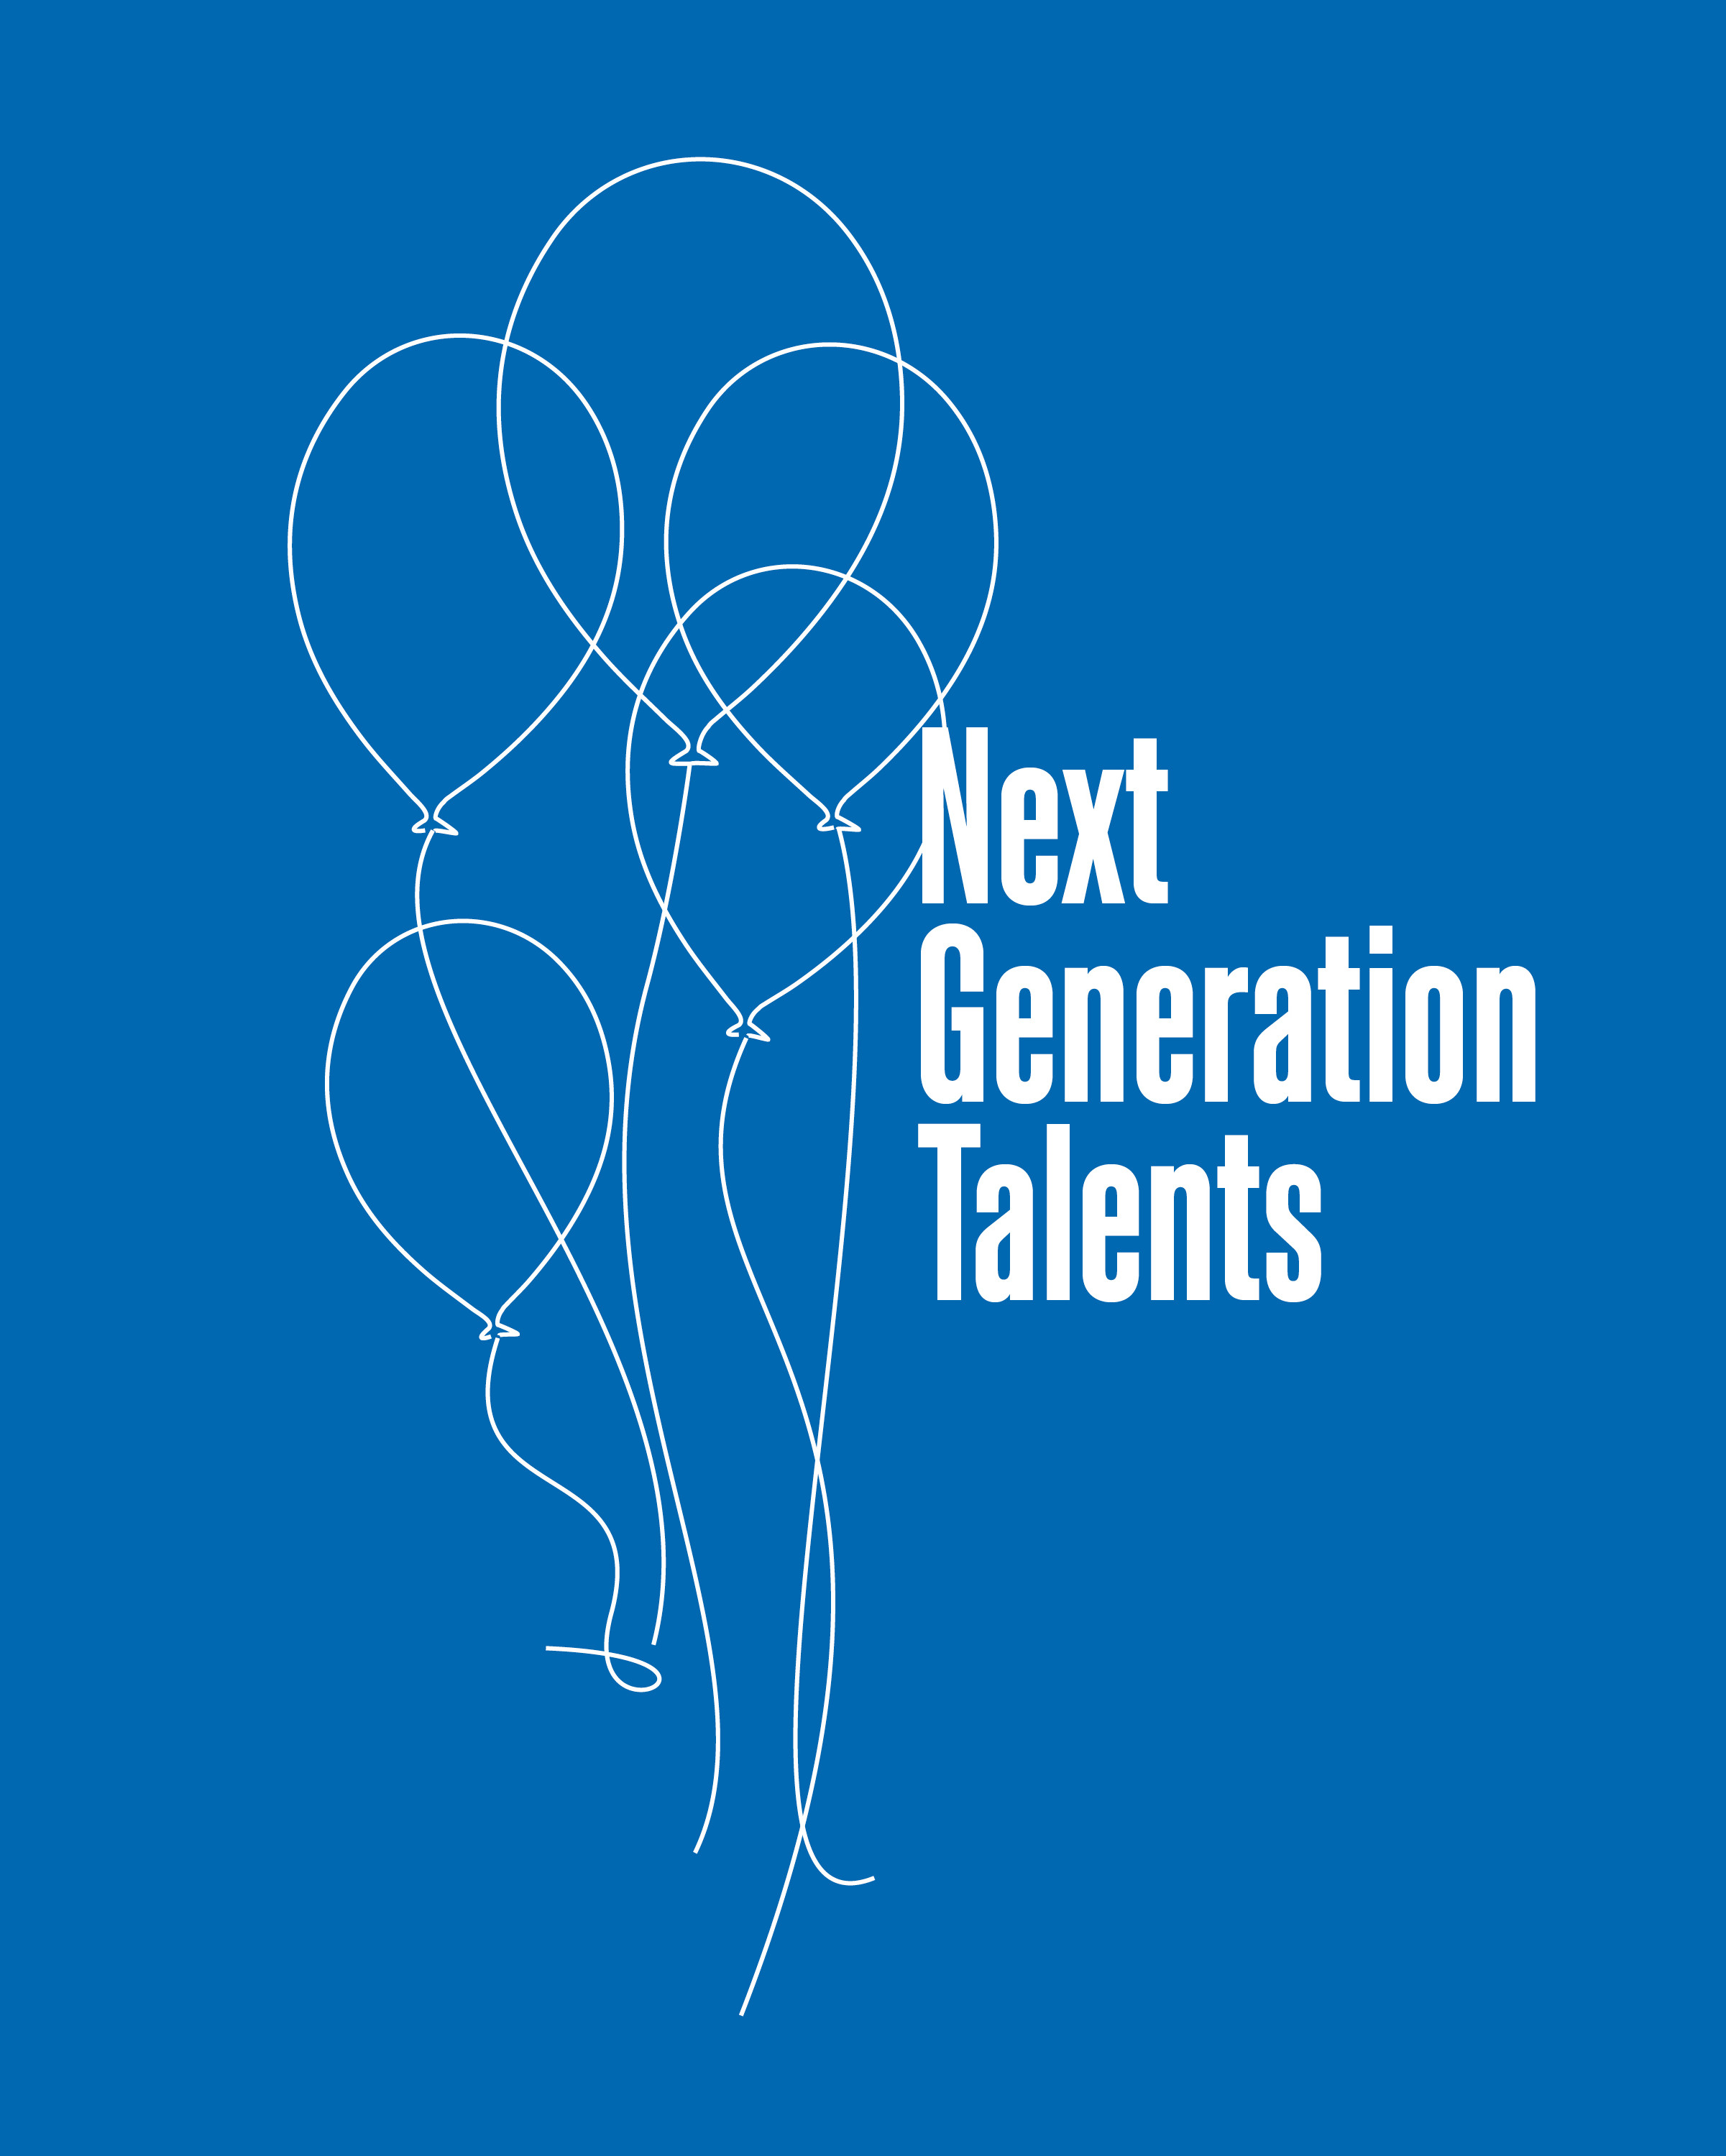 Next Generation Talents